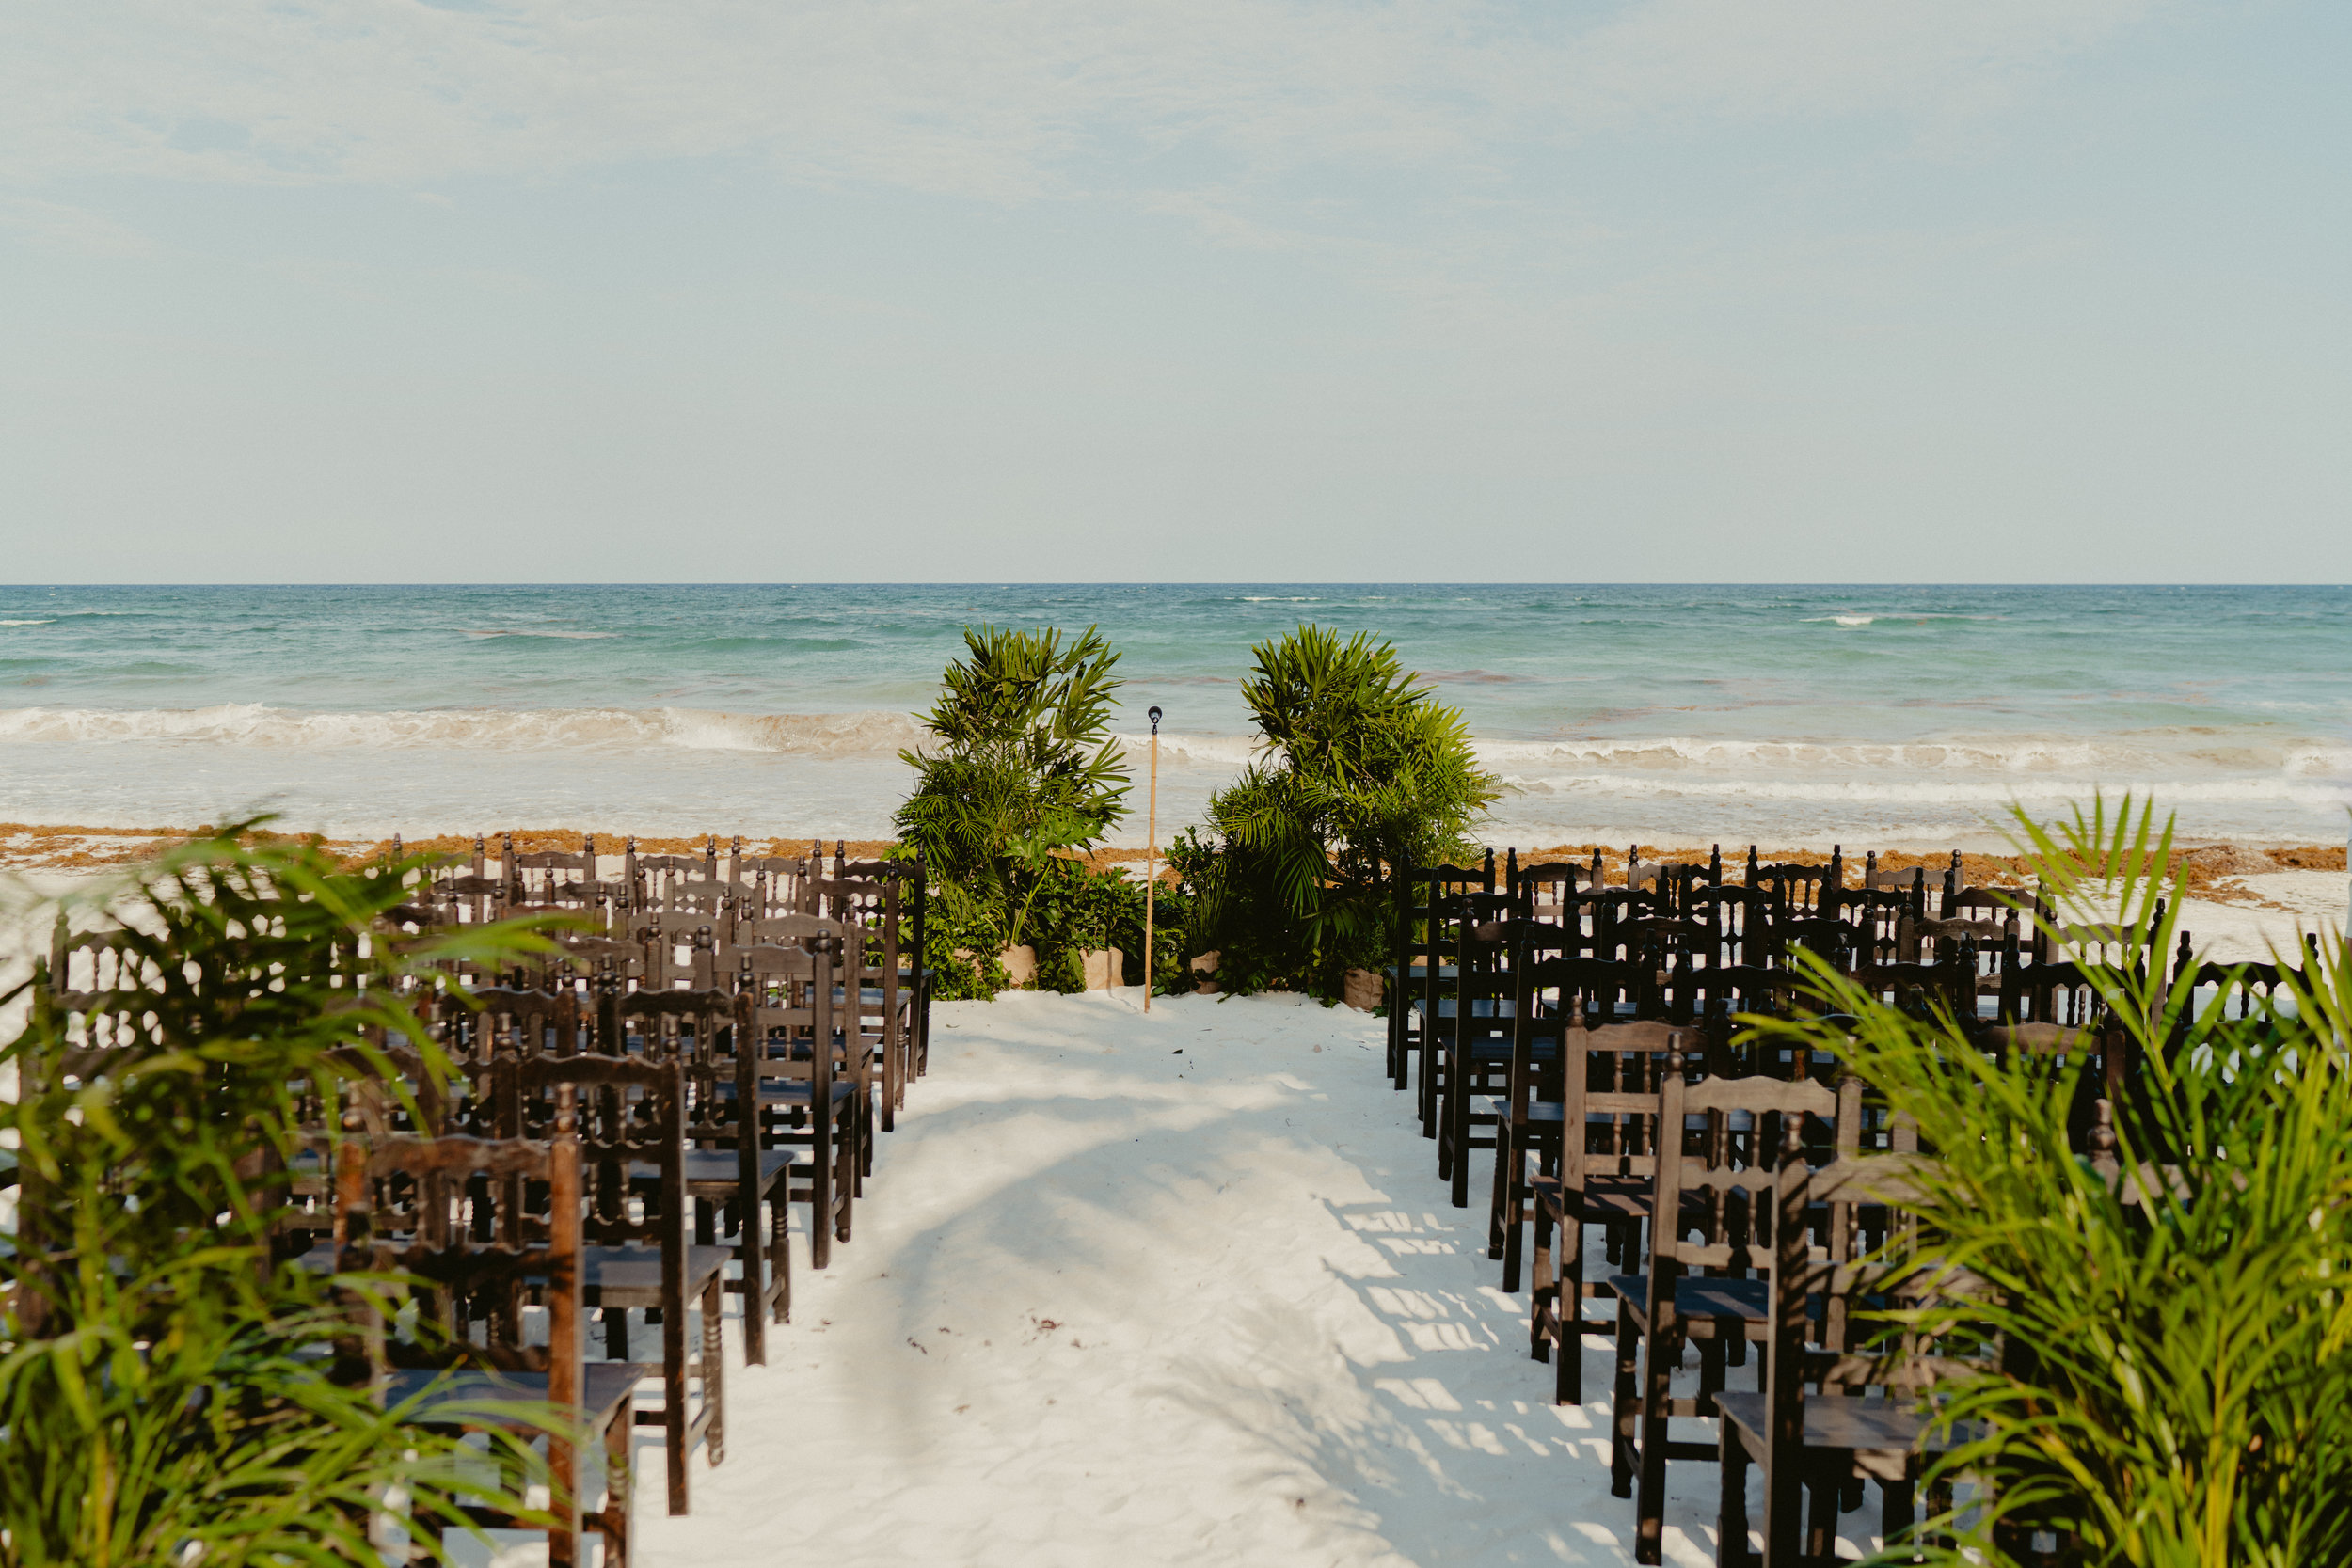 Joanna-and-Cameron_Ahua_Tulum_Wedding_Chellise_MIchael-Photography-243.jpg